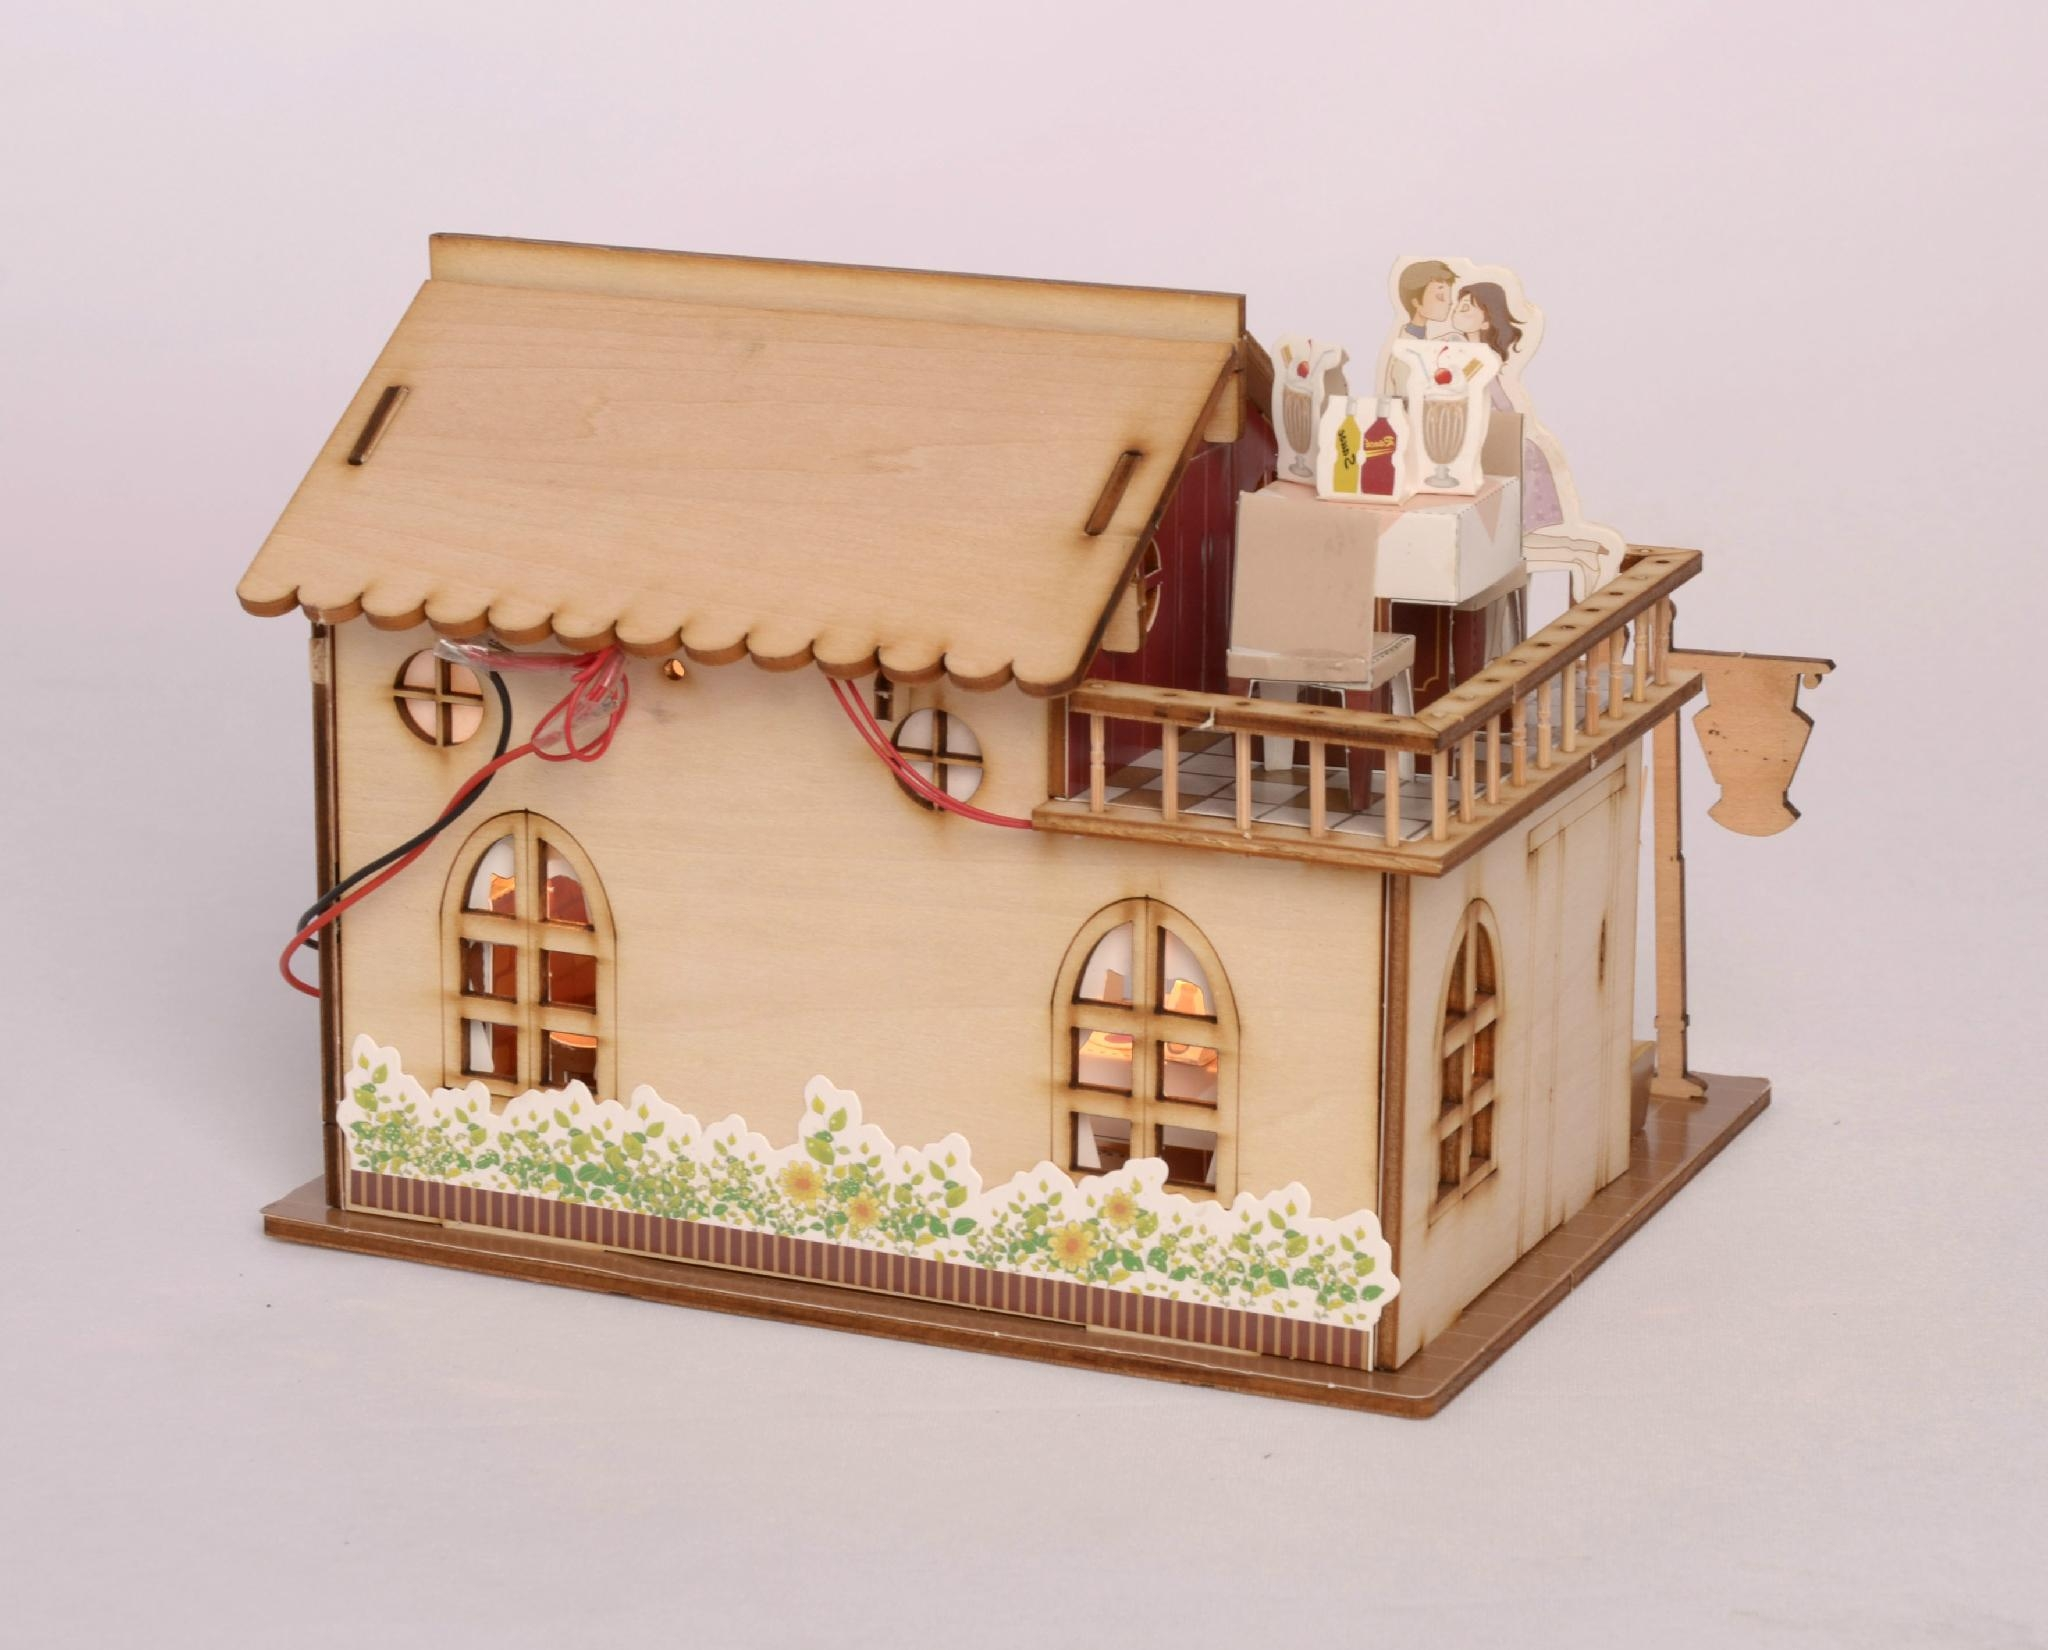 Restaurant building plan toy wood model diy house bm 518 for Diy home building plans